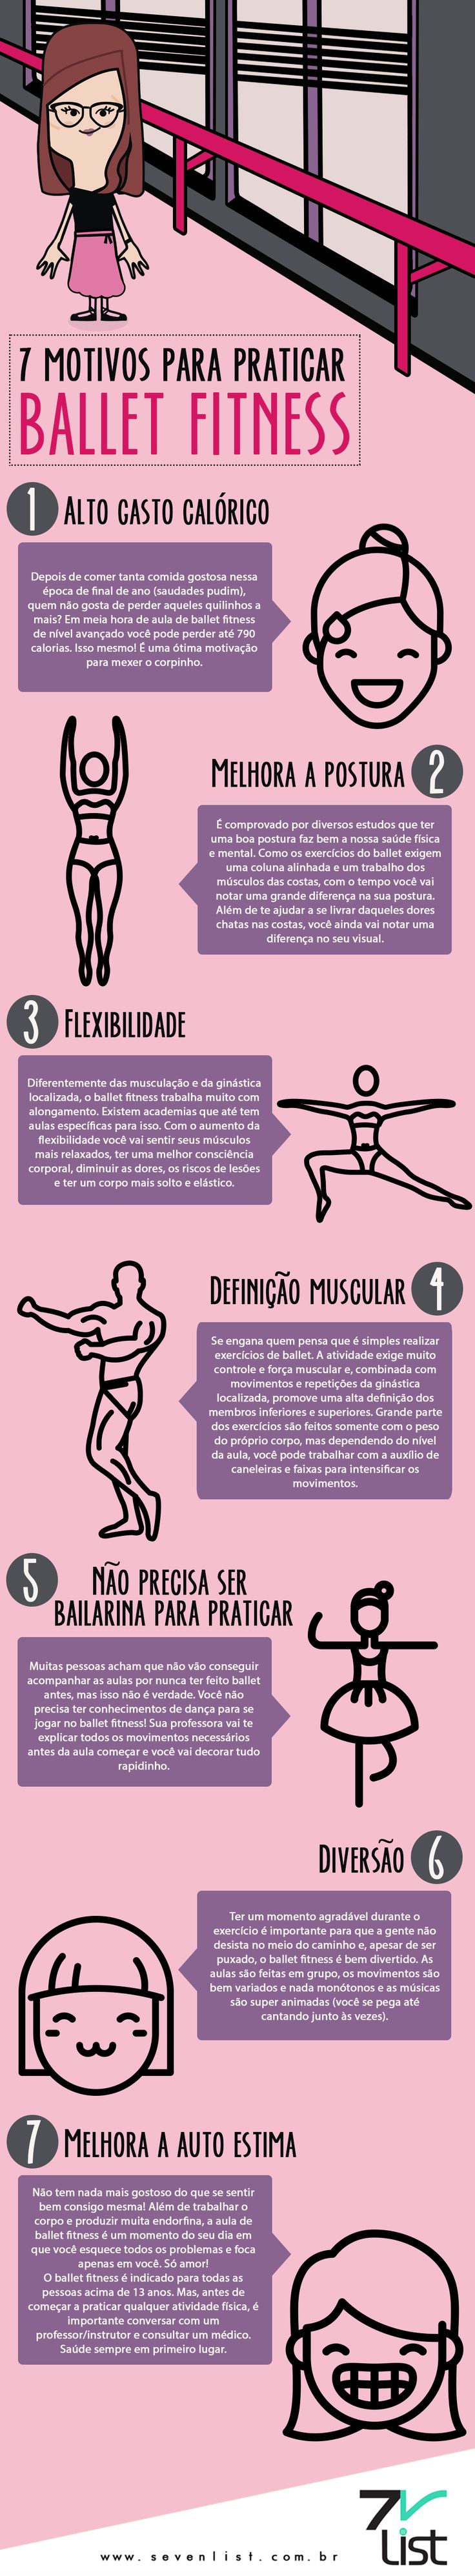 #Art #Infográfico #Desgin #SevenList #Dance #Dança #BalletFitness #Ballet #Balé #Workout #NewYear #Fit #Exercise #Ballet